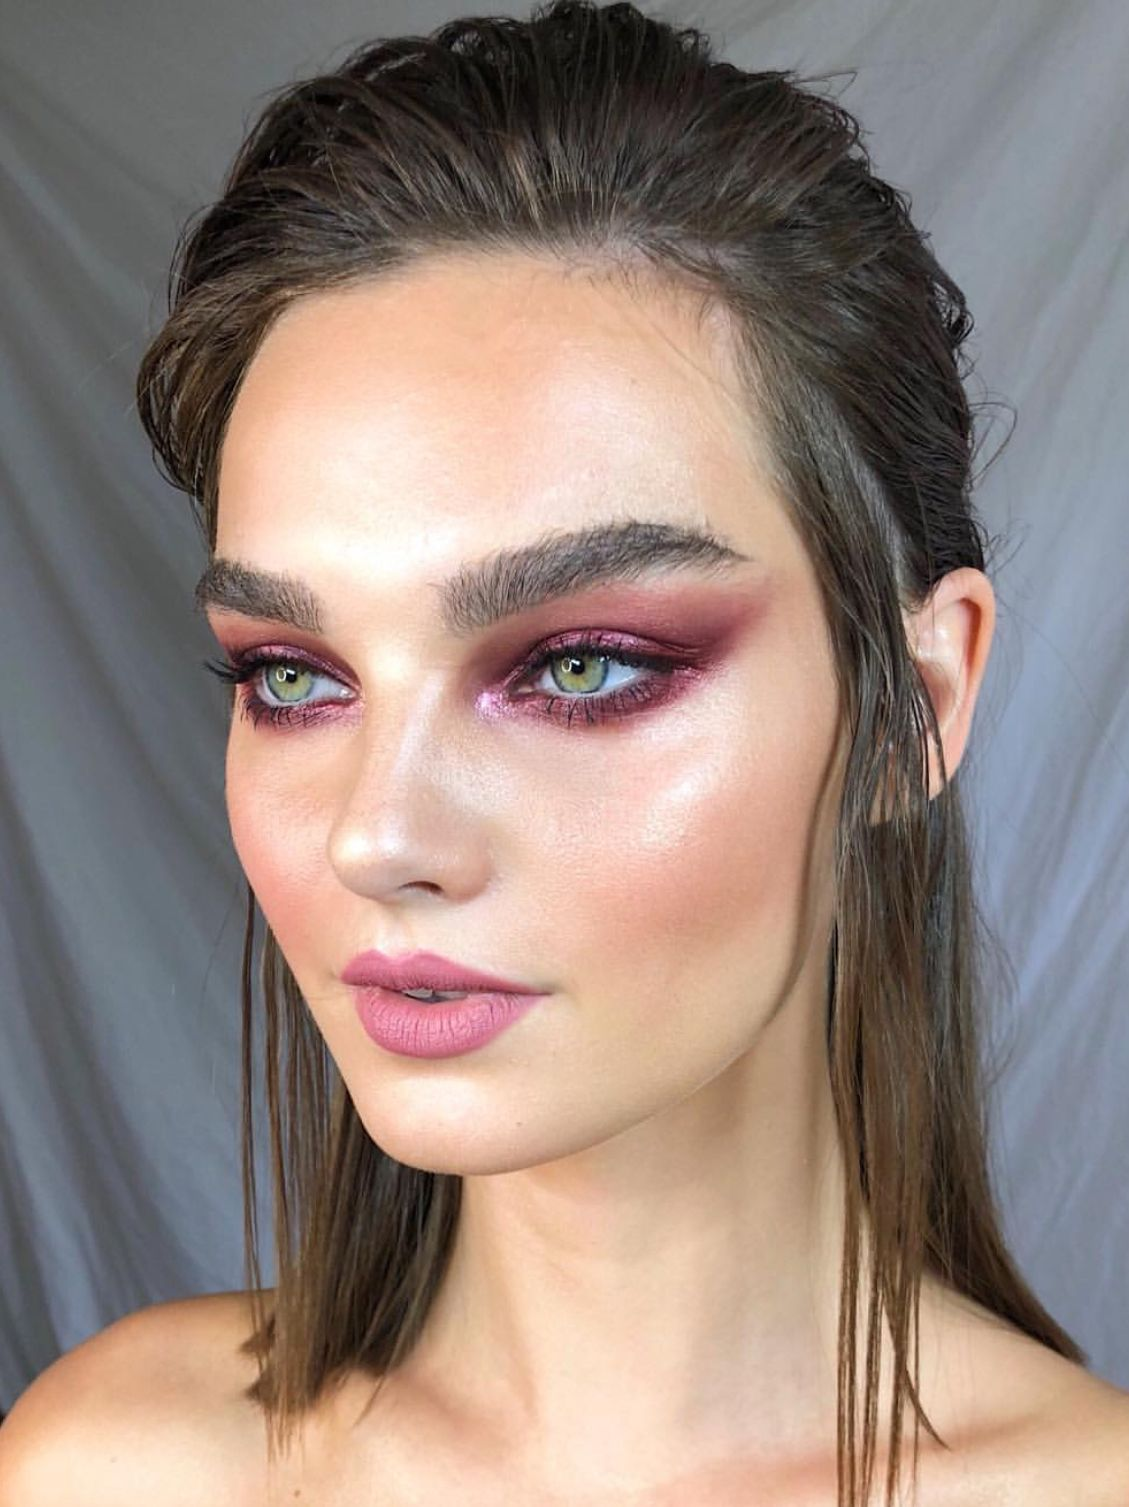 d70815b4341 Magenta pink eyeshadow and pink lipstick makeup look. Stunning and very  editorial 🔥😍 #pink #makeuplooks